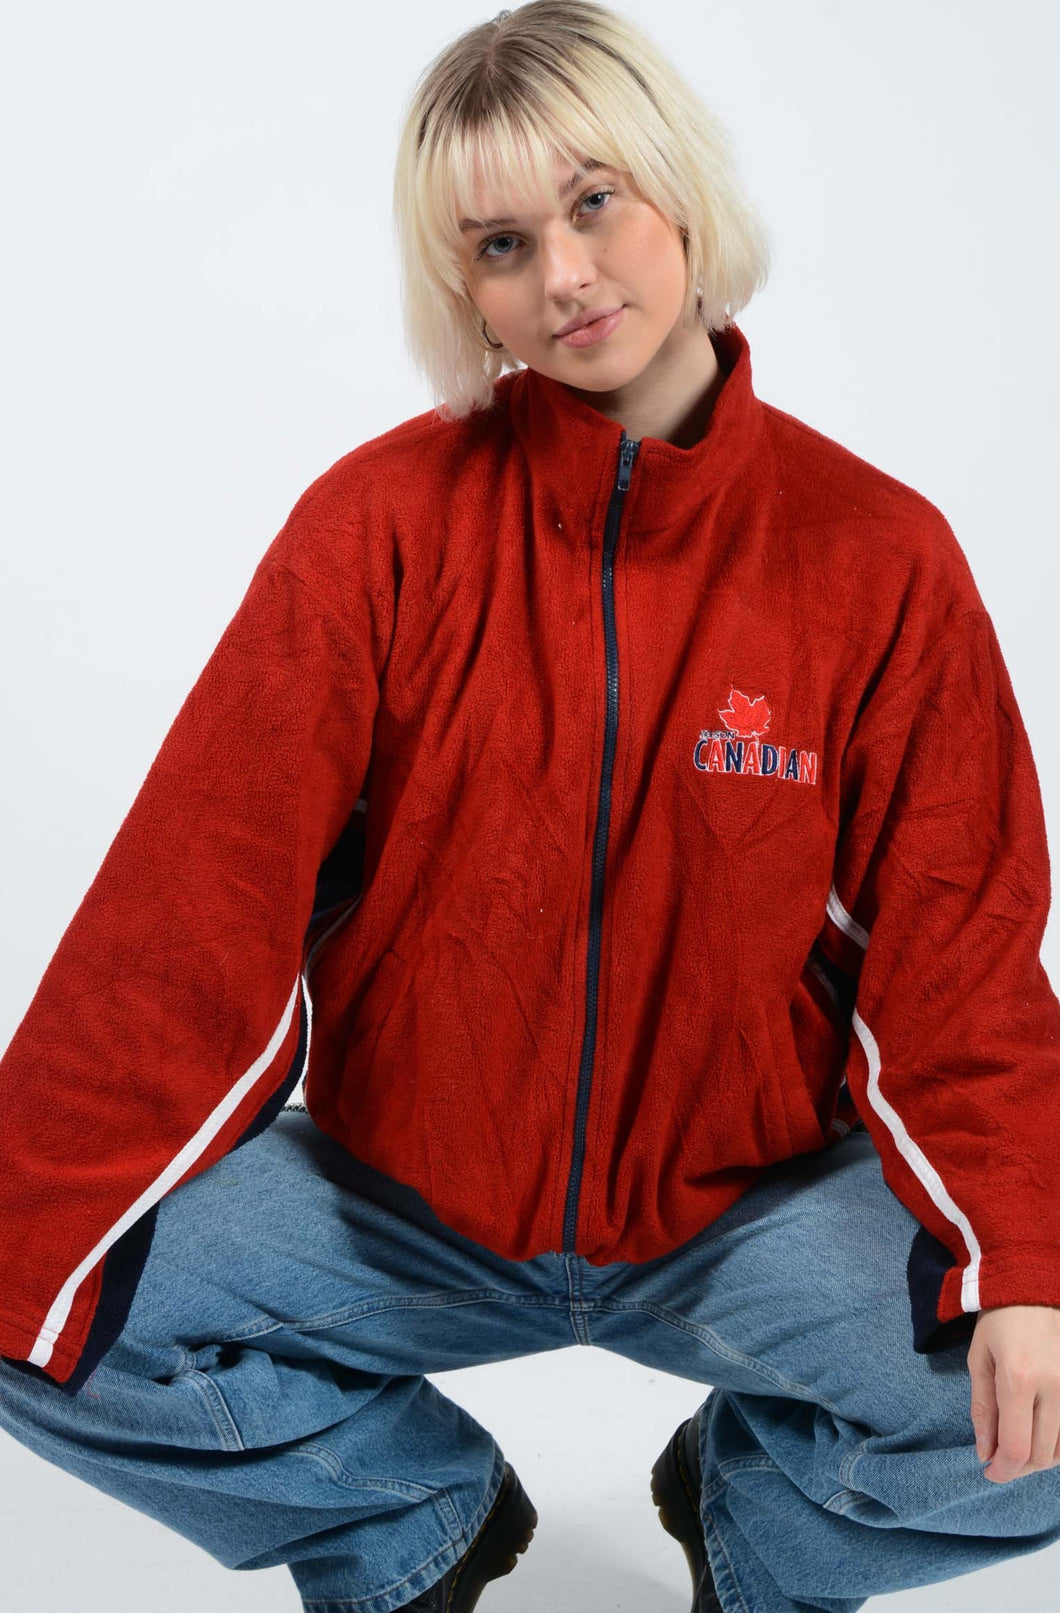 Vintage 90s Zip Up Fleece in Red With Canada Logo - L